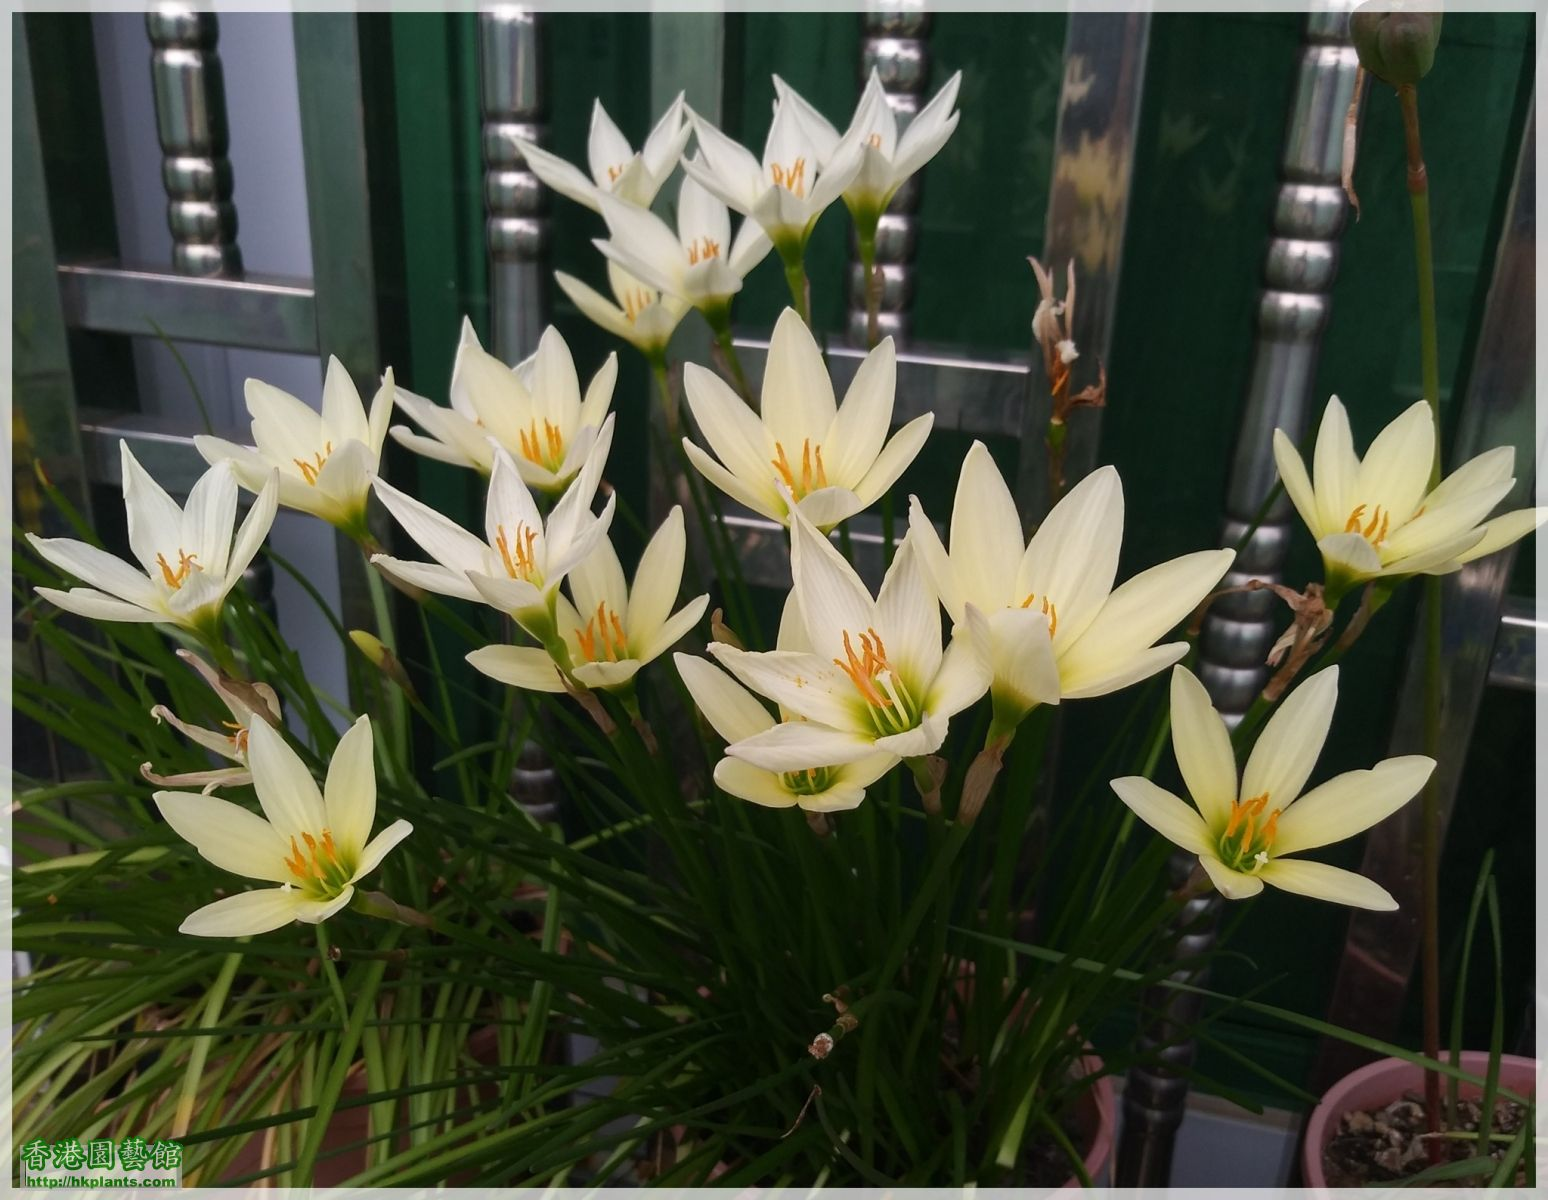 Zephyranthes 'Ajax'-2018-012.jpg